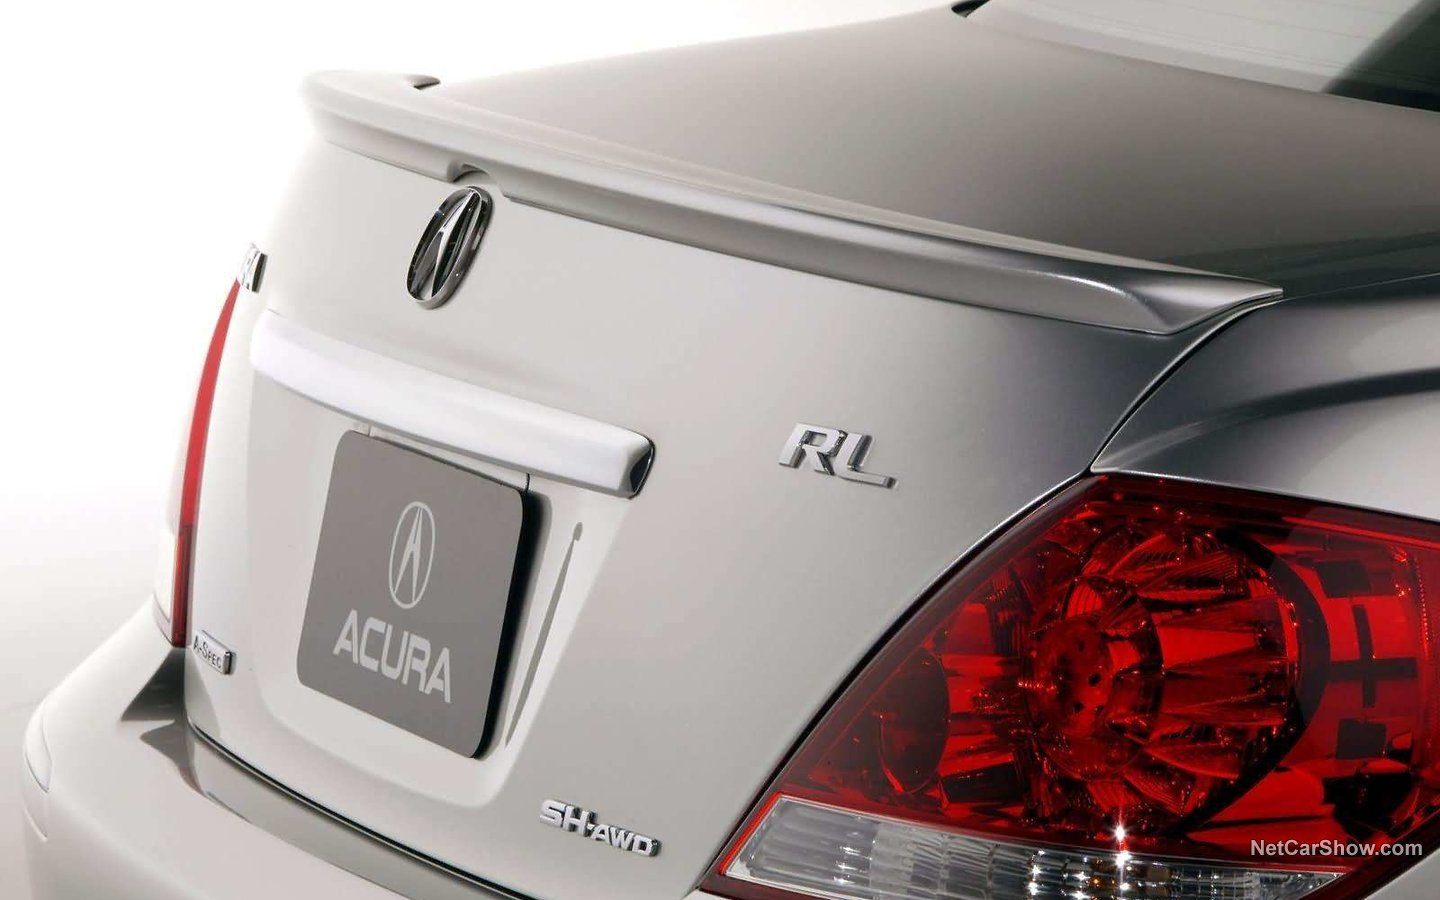 Acura RL A-Spec Performance Package 2005 5e1f4617